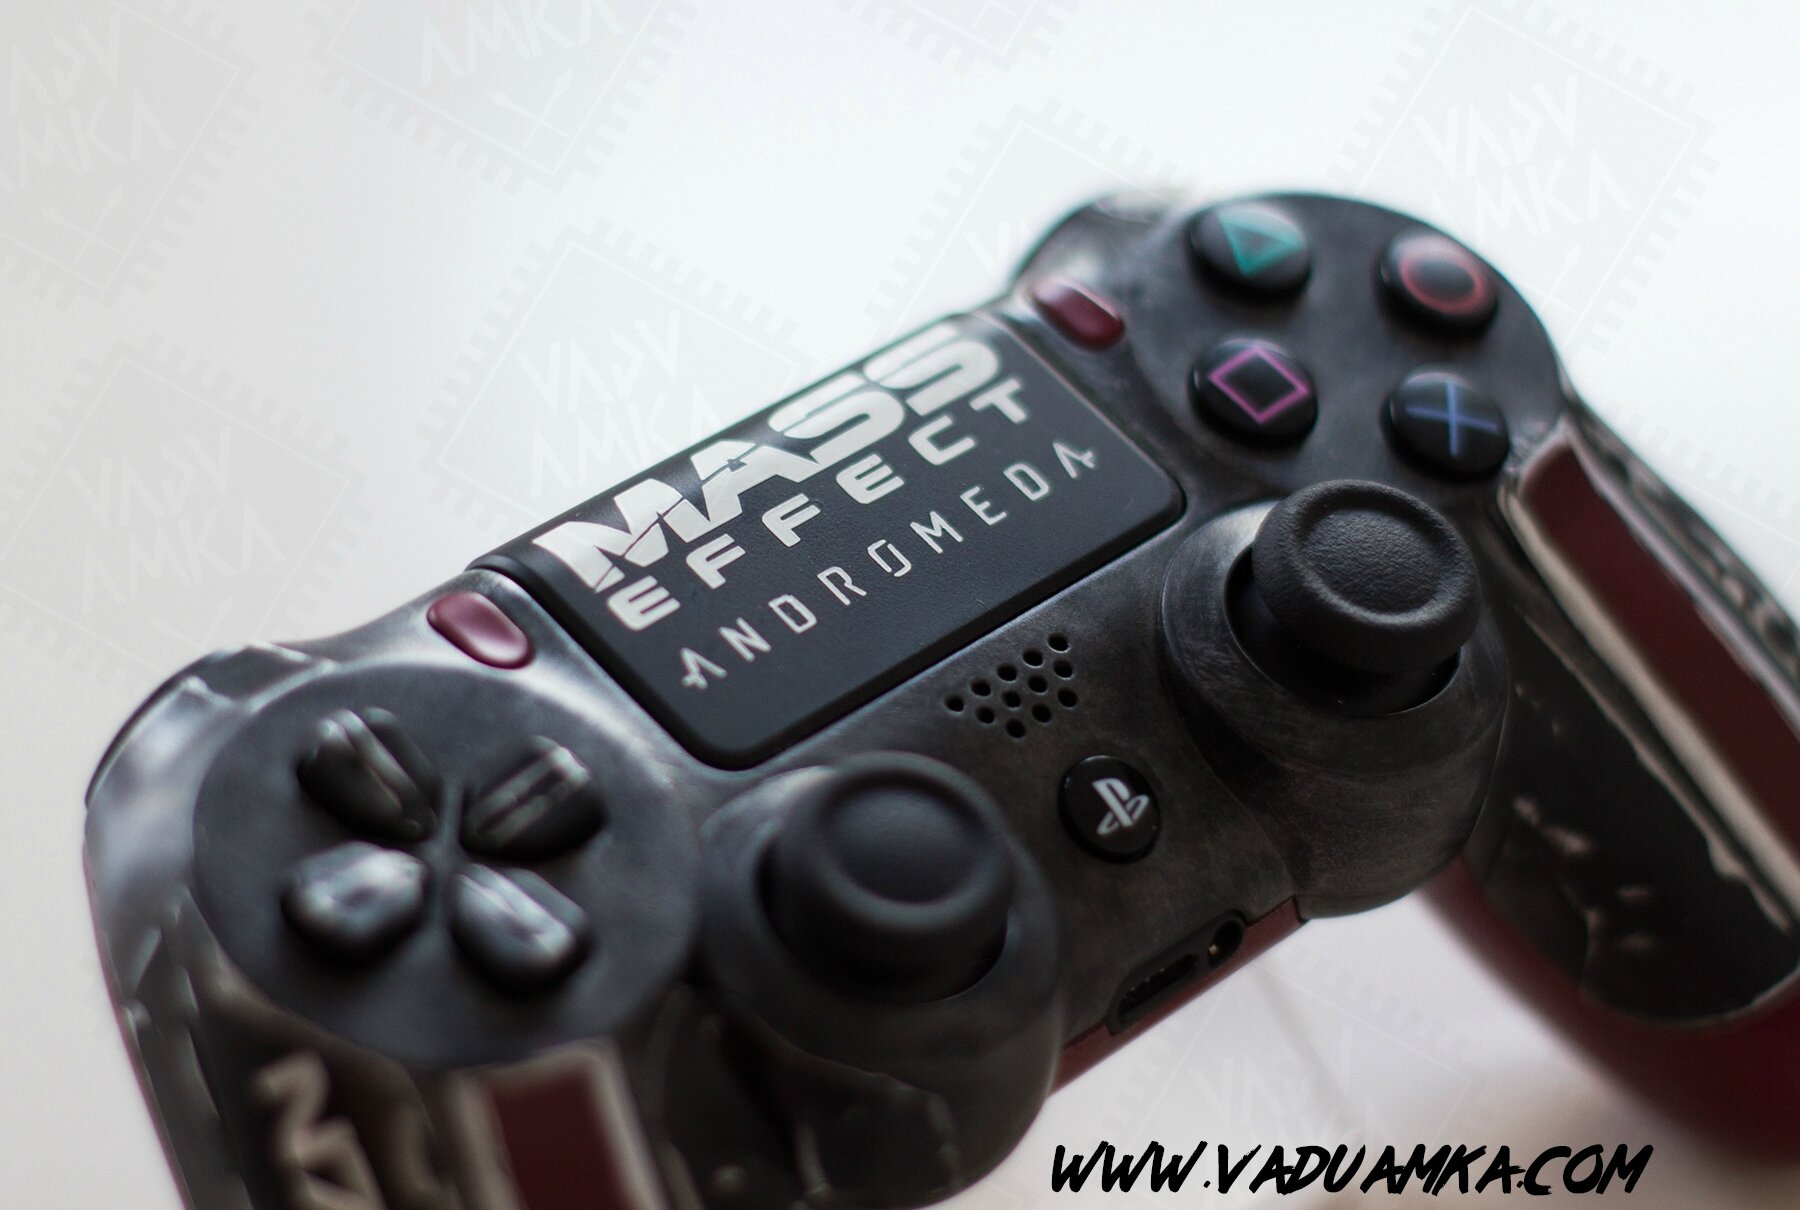 Mass Effect™: Andromeda Promotional controller